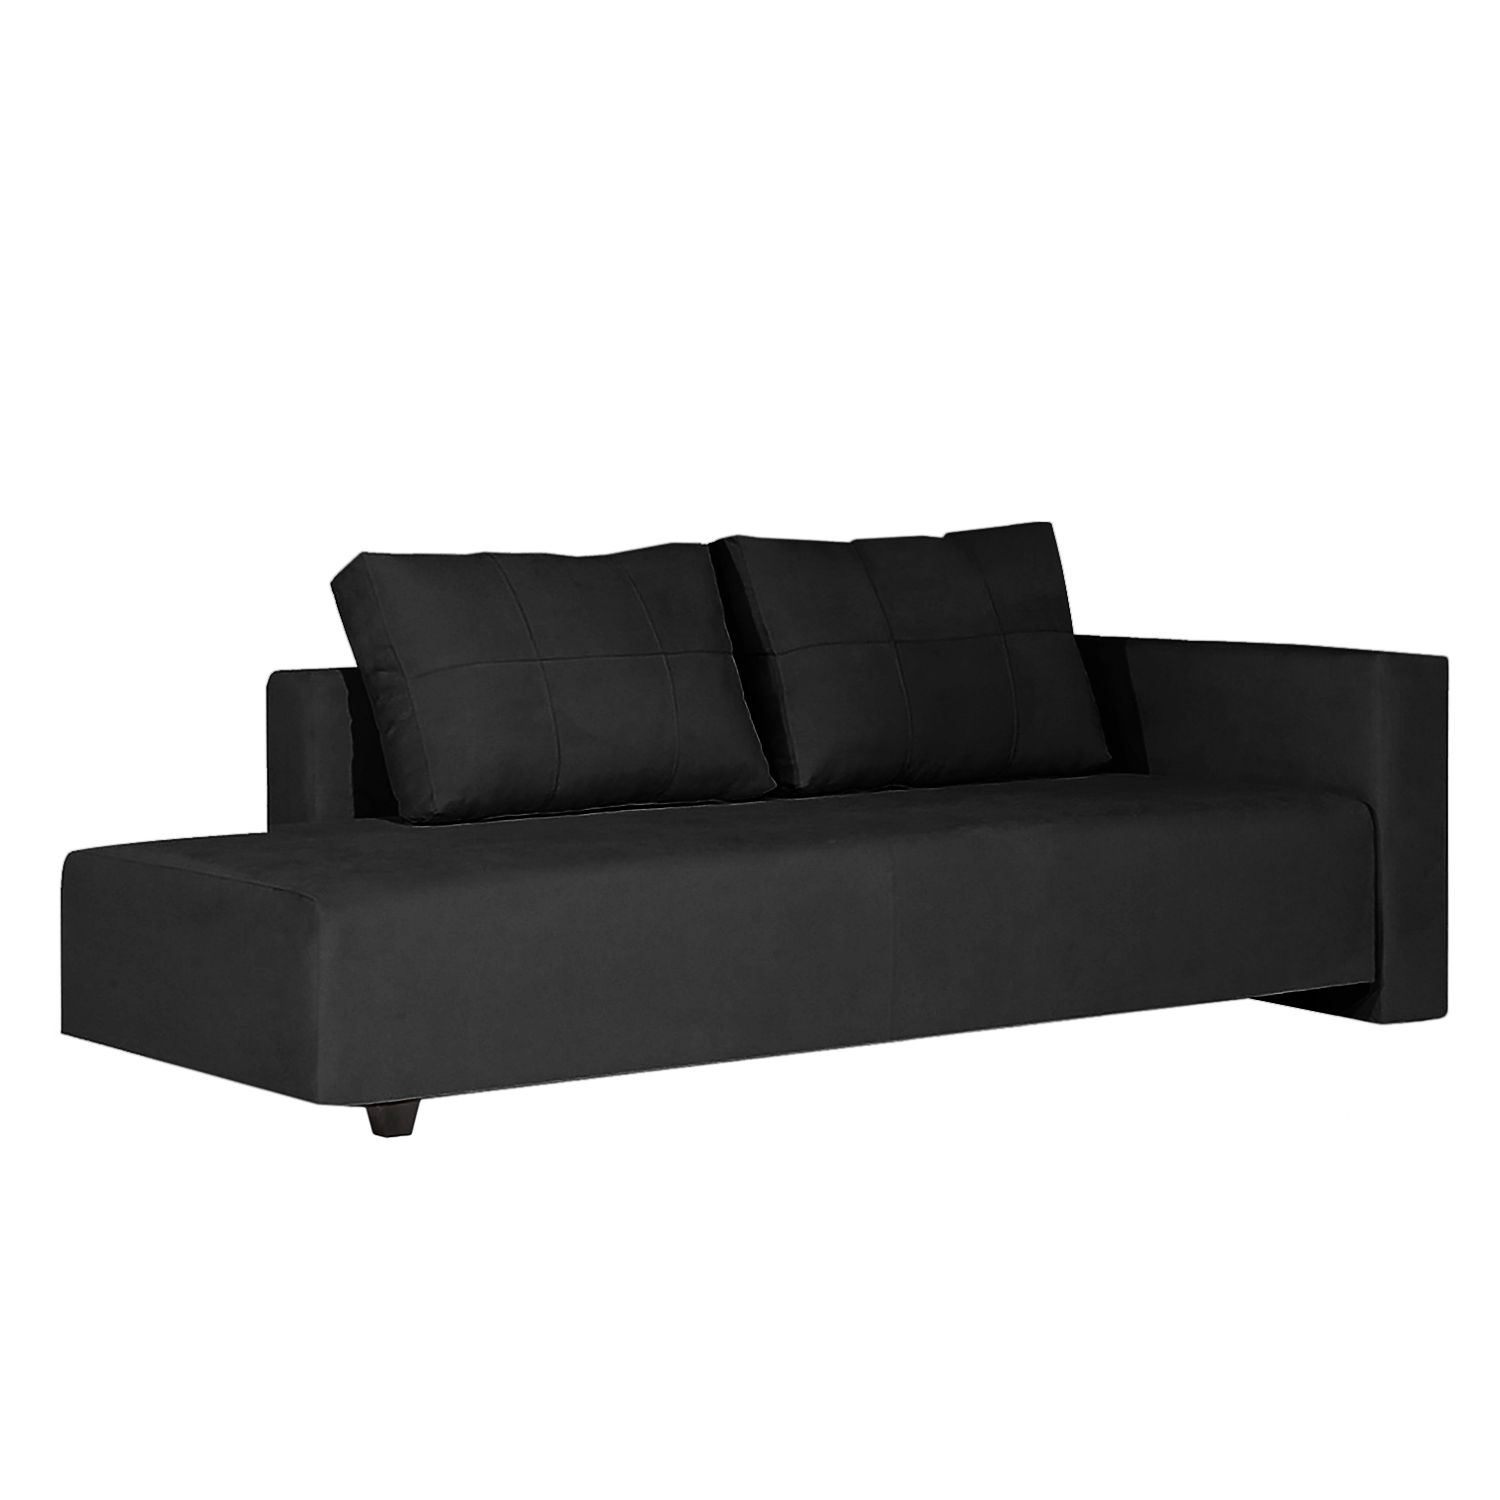 Hofmeister Big Sofa Sofa Bettfunktion Leder Review Home Co